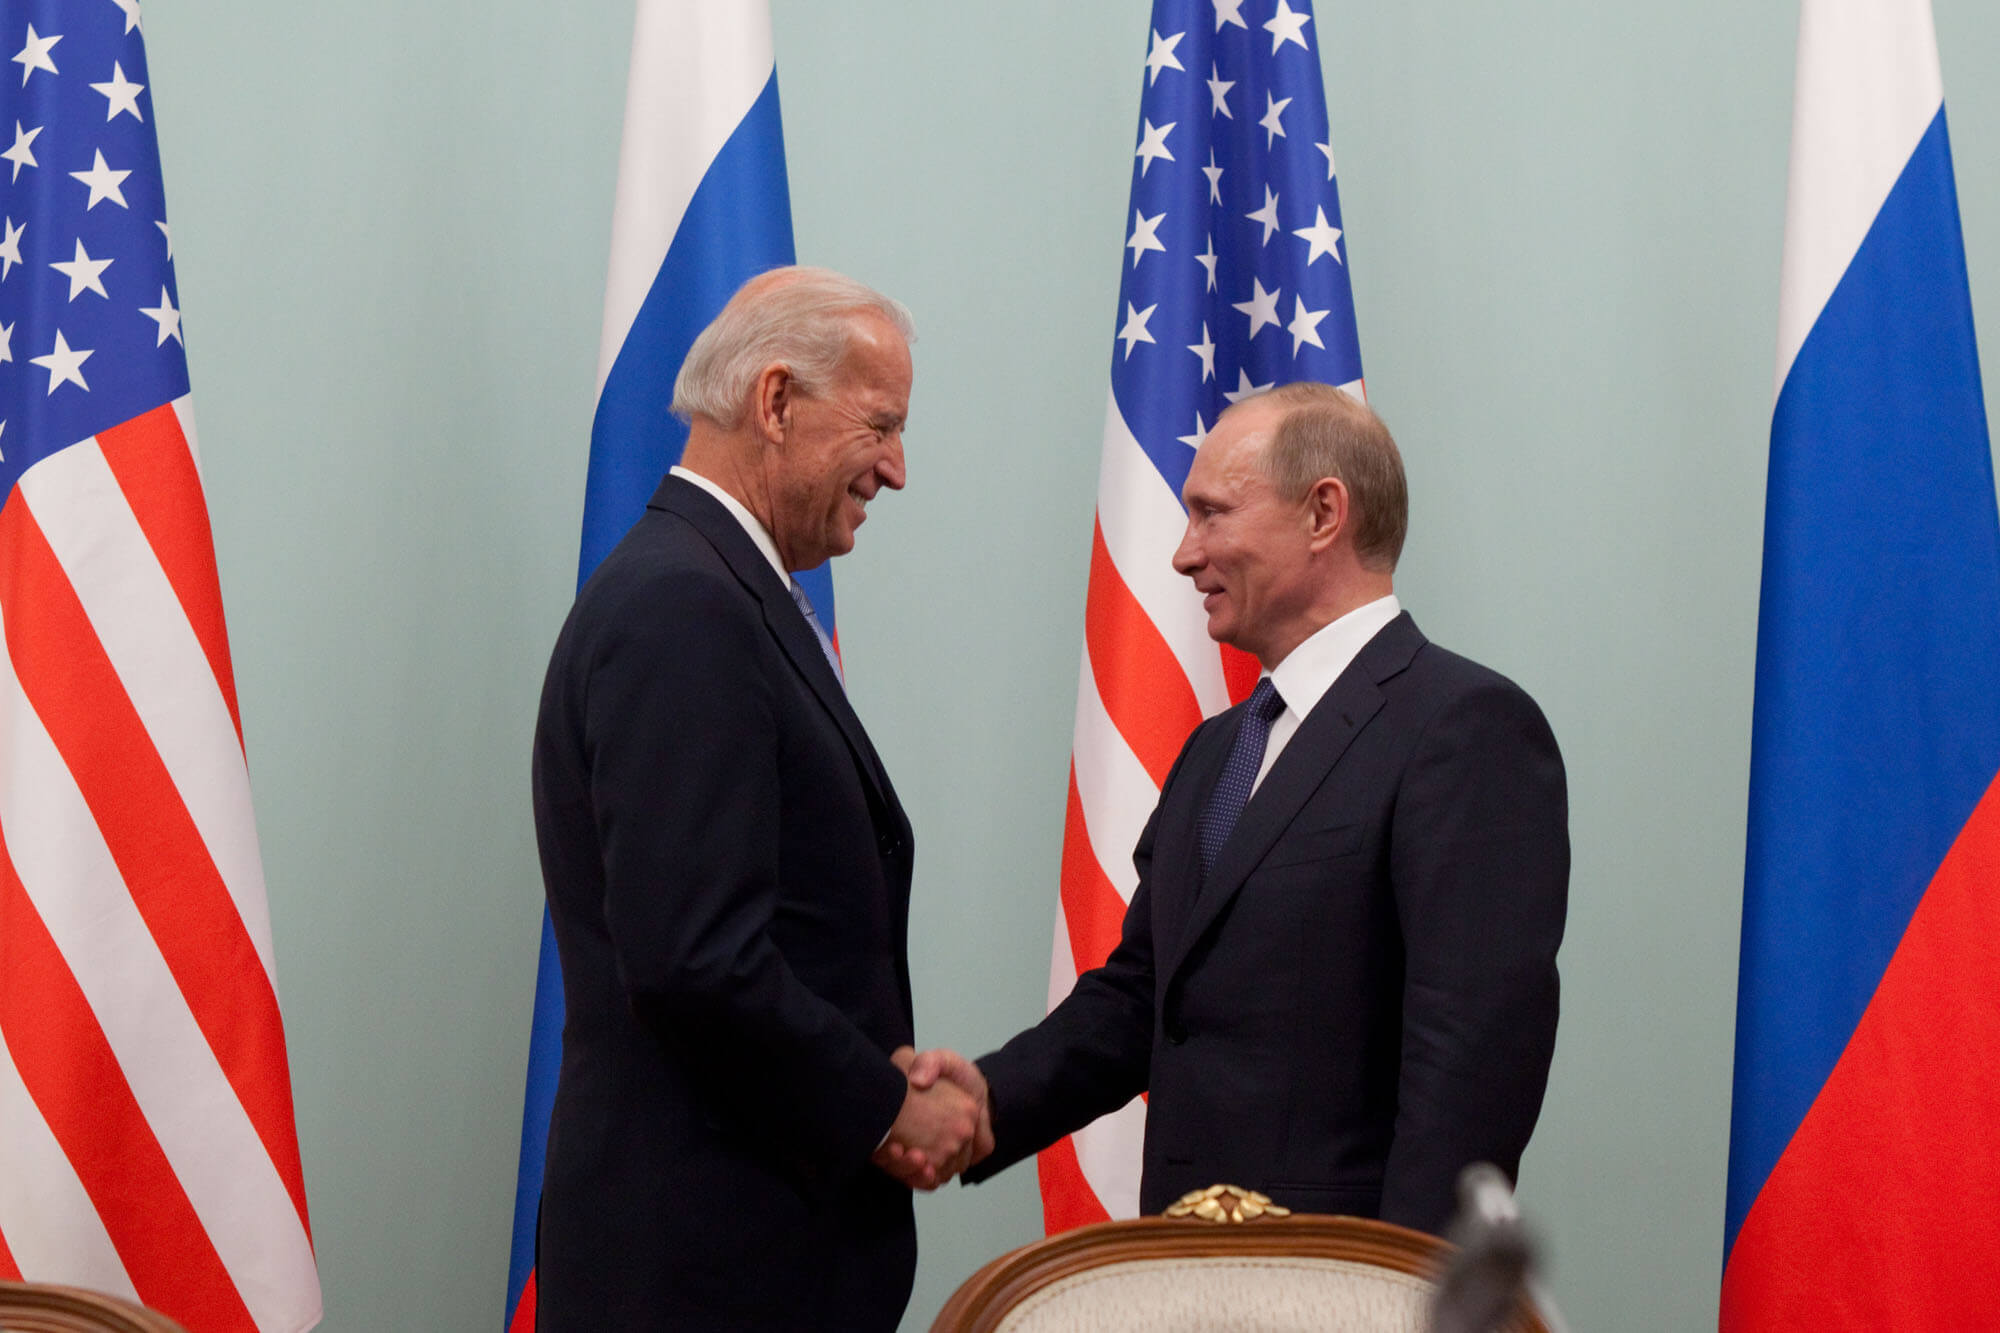 Vice President Joe Biden greets Russian Prime Minister Vladimir Putin at the Russian White House, in Moscow, Russia, March 10, 2011. (Official White House Photo by David Lienemann)